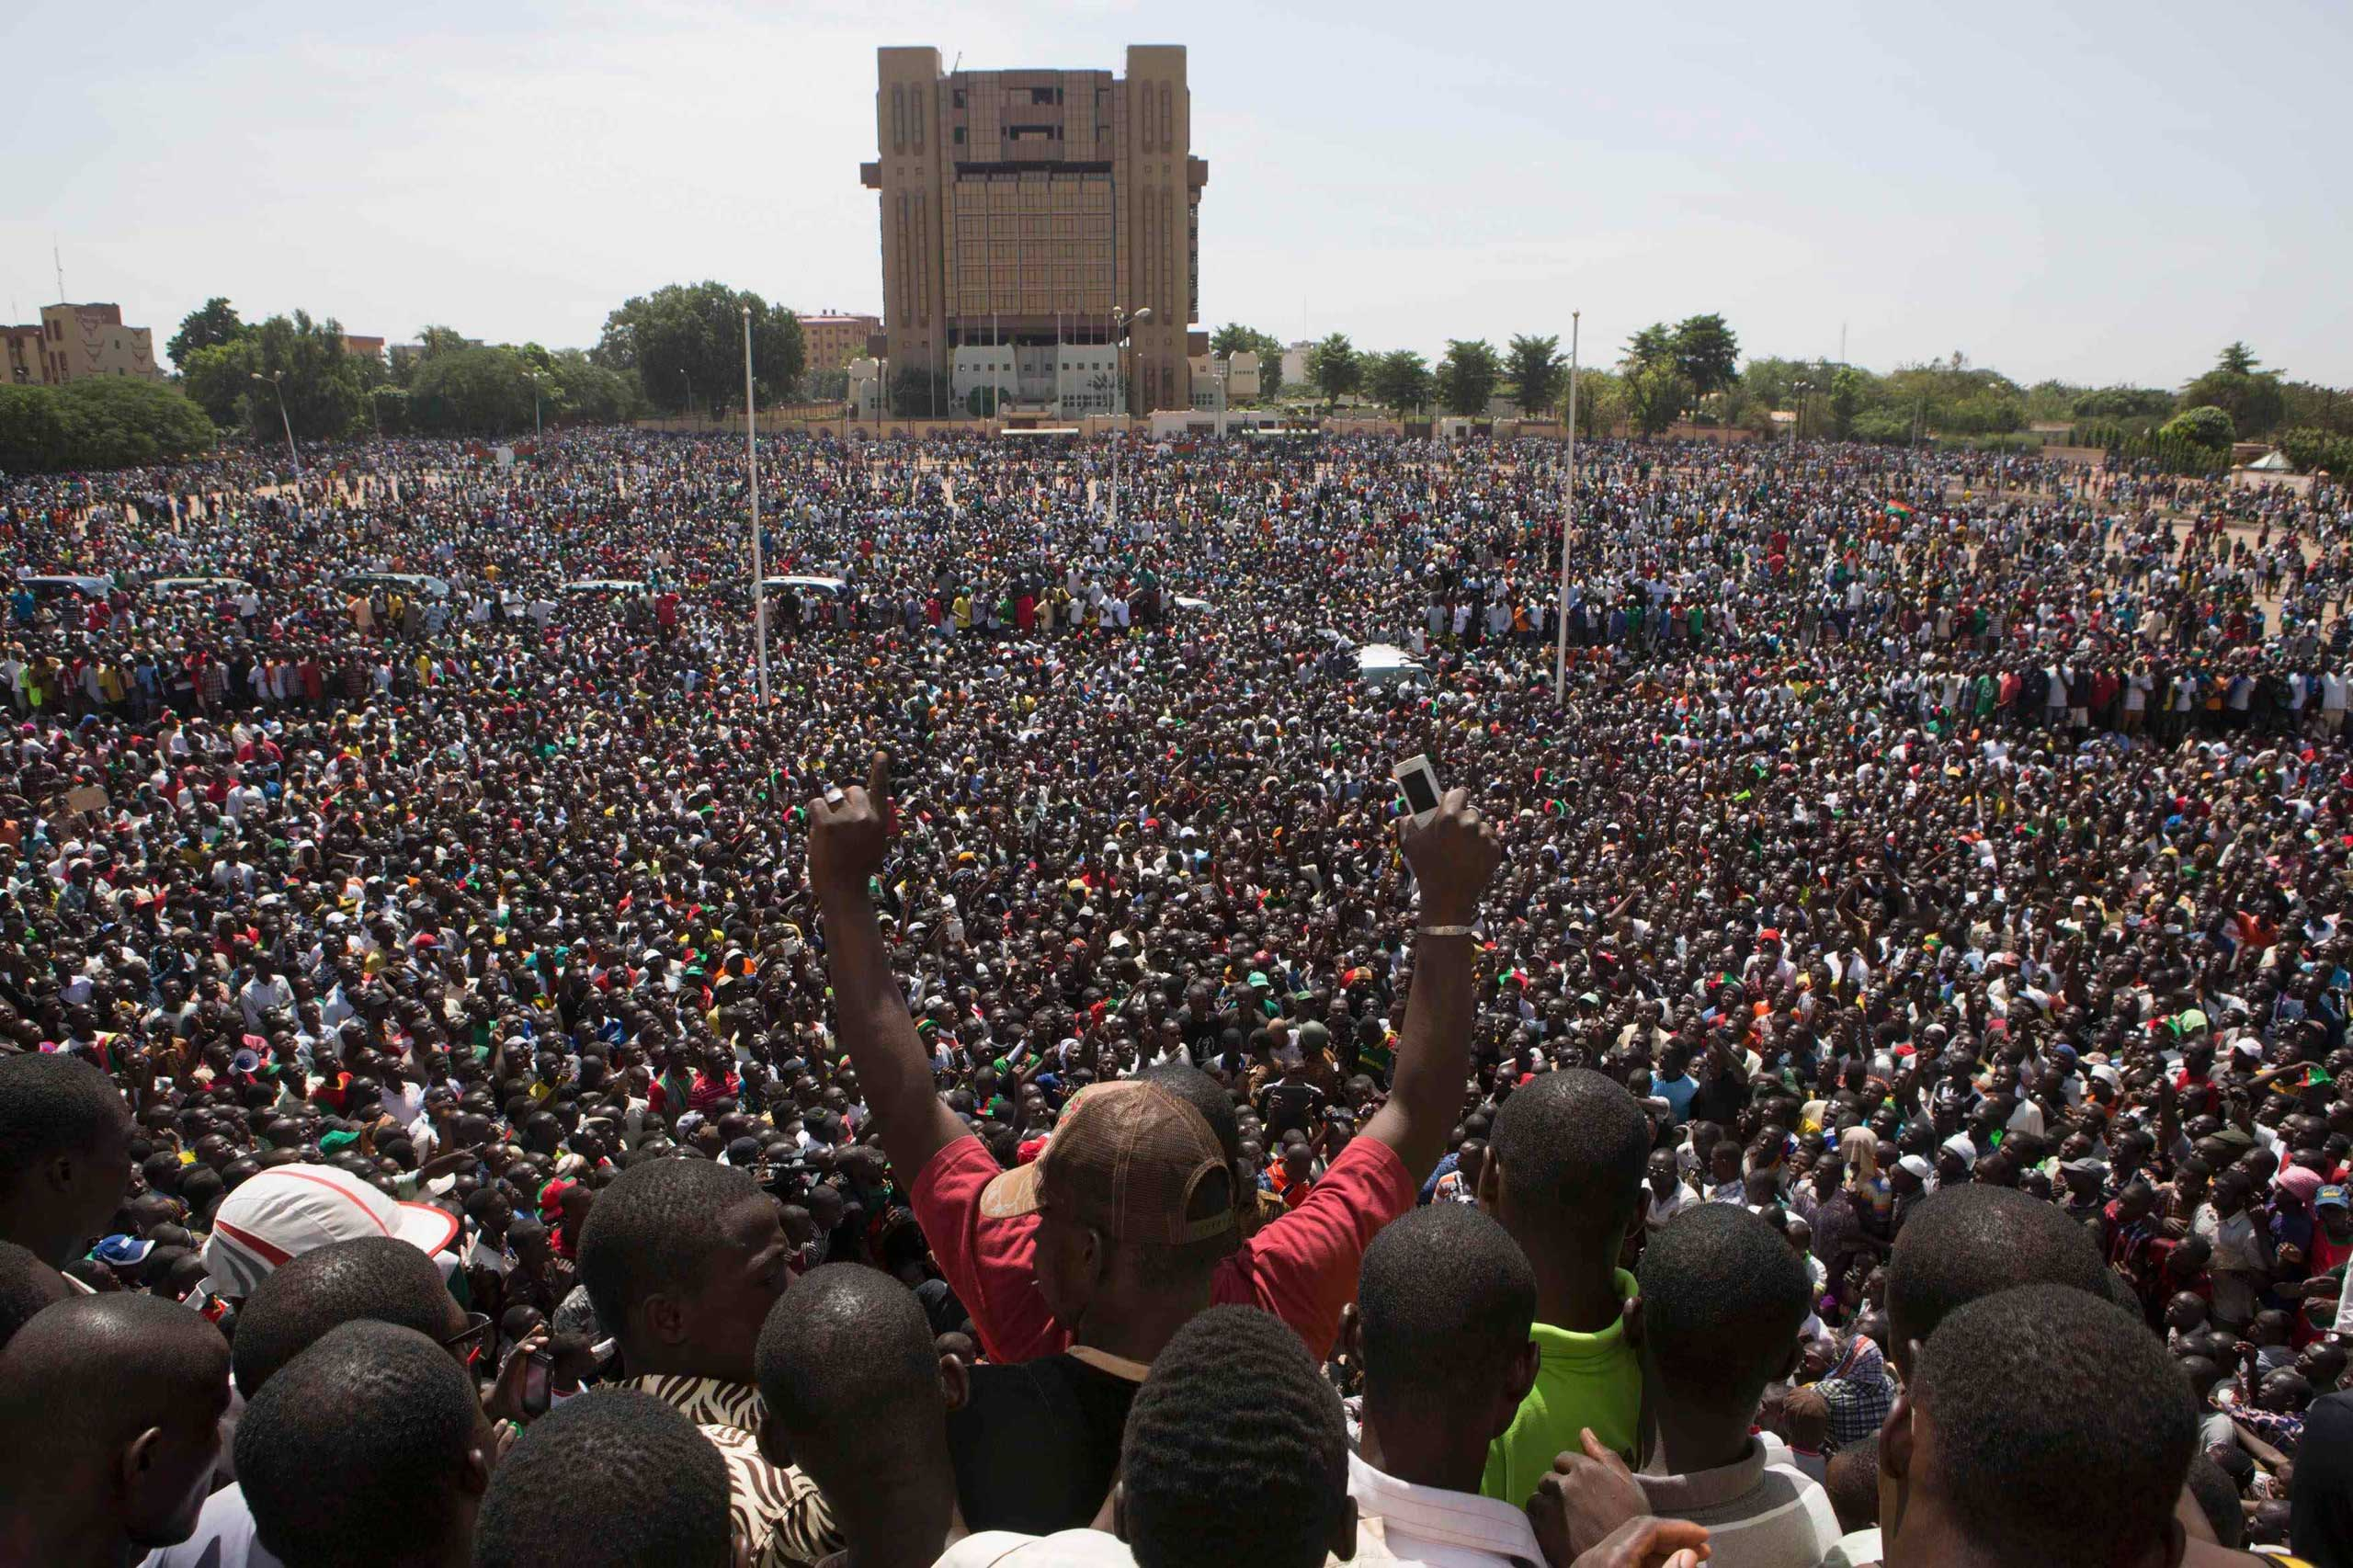 Anti-government protesters gather in the Place de la Nation in Ouagadougou, capital of Burkina Faso, Oct. 31, 2014.